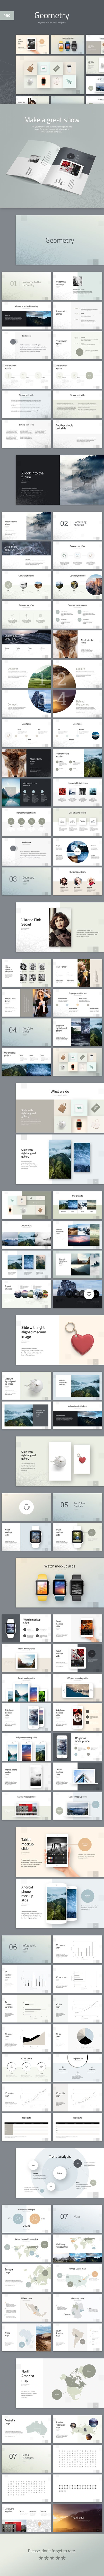 Geometry - Modern Keynote Presentation Template